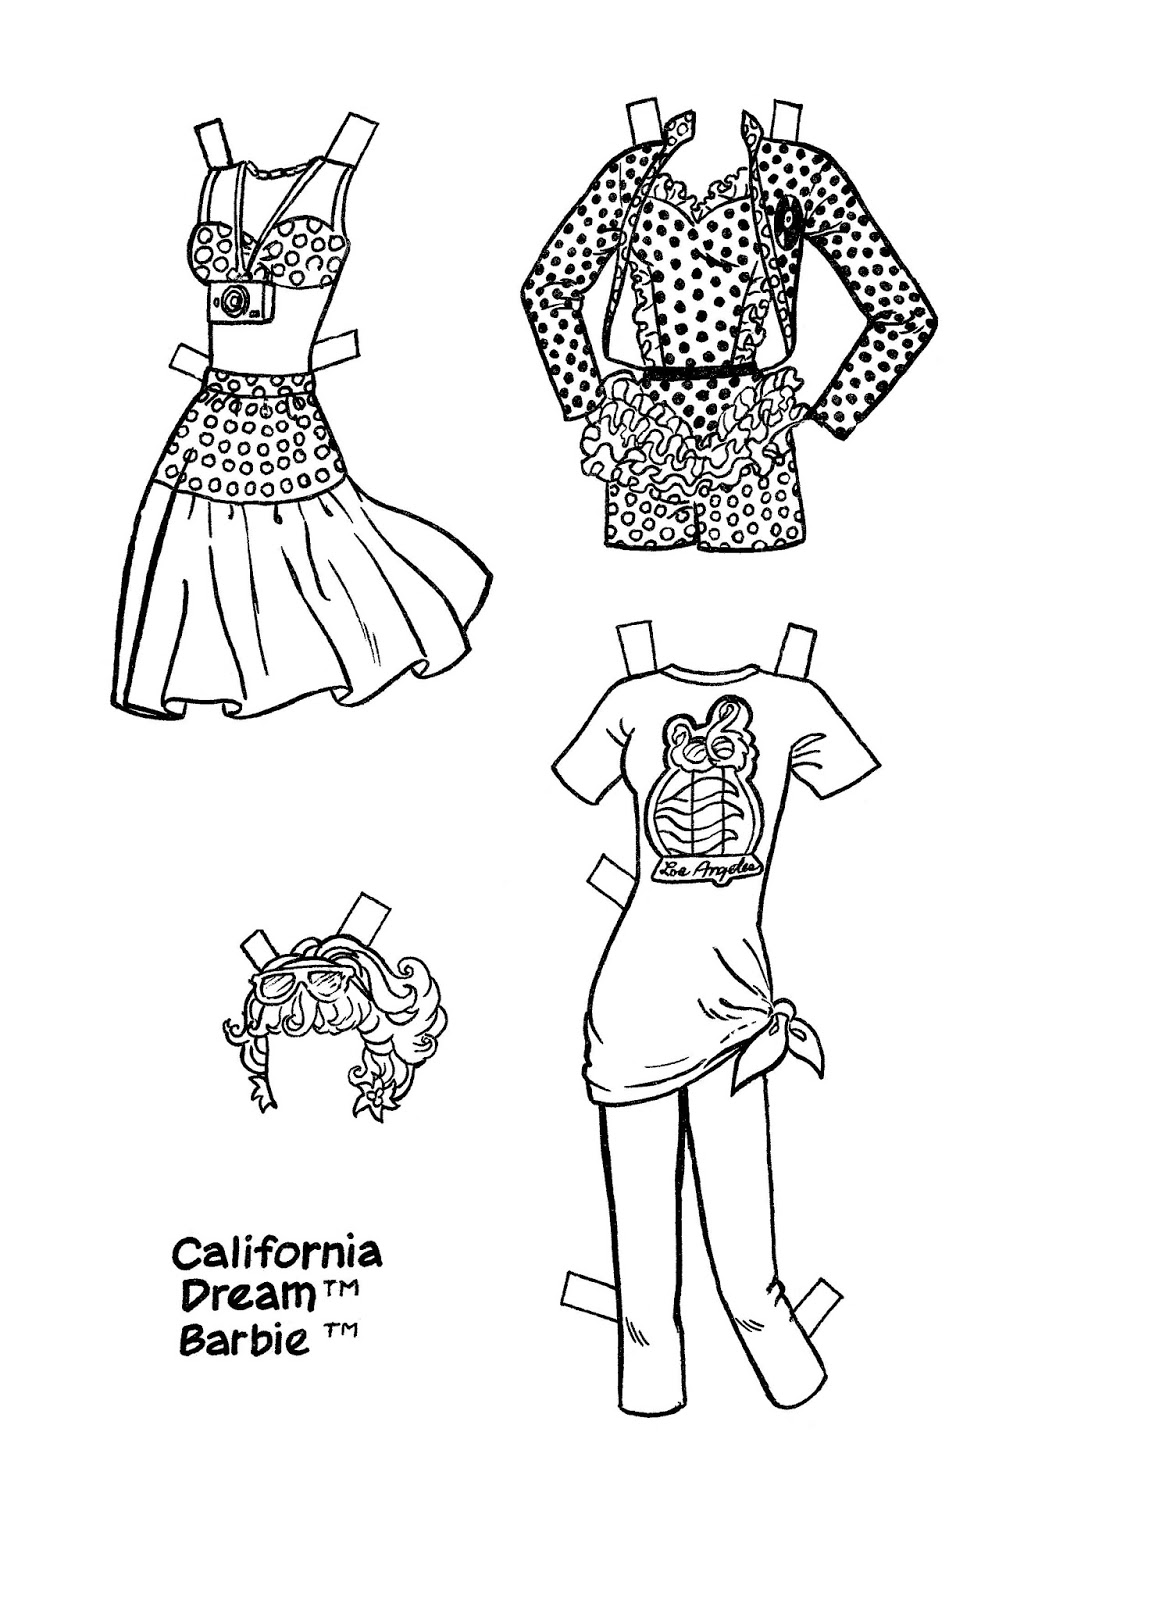 barbie doll coloring pages barbie39s dog coloring pages hellokidscom coloring doll pages barbie